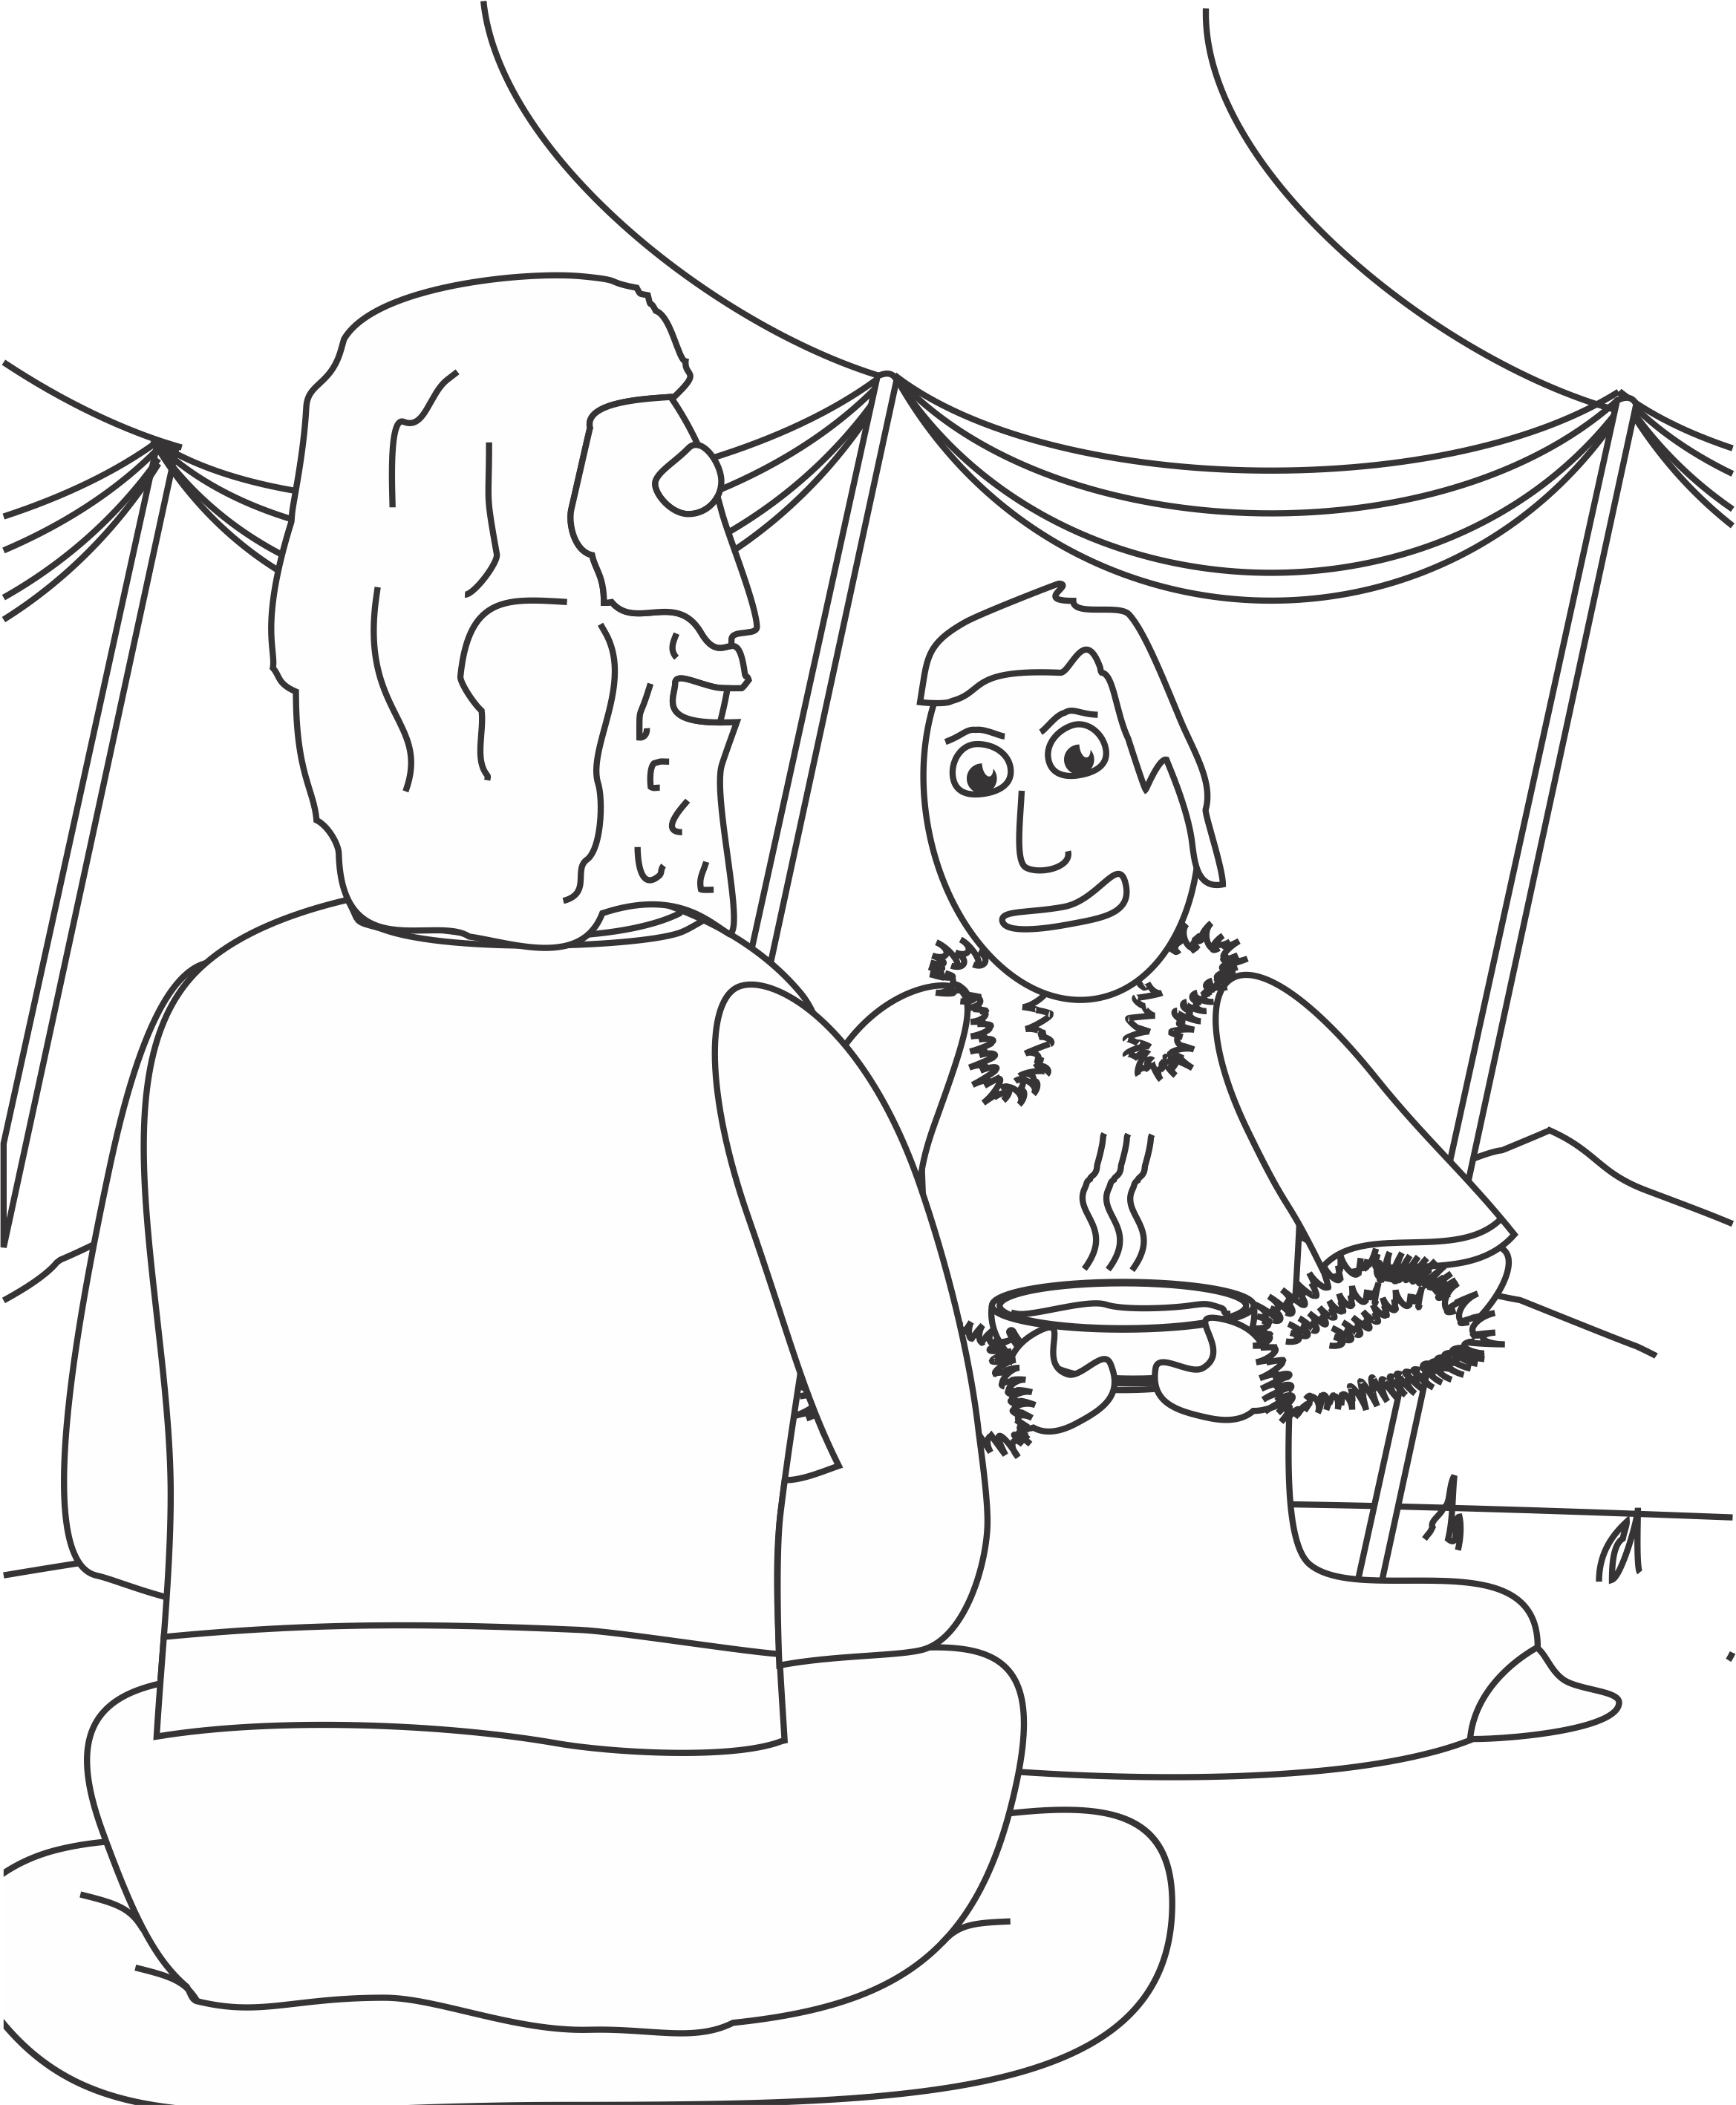 esaus birthright coloring pages - photo#17